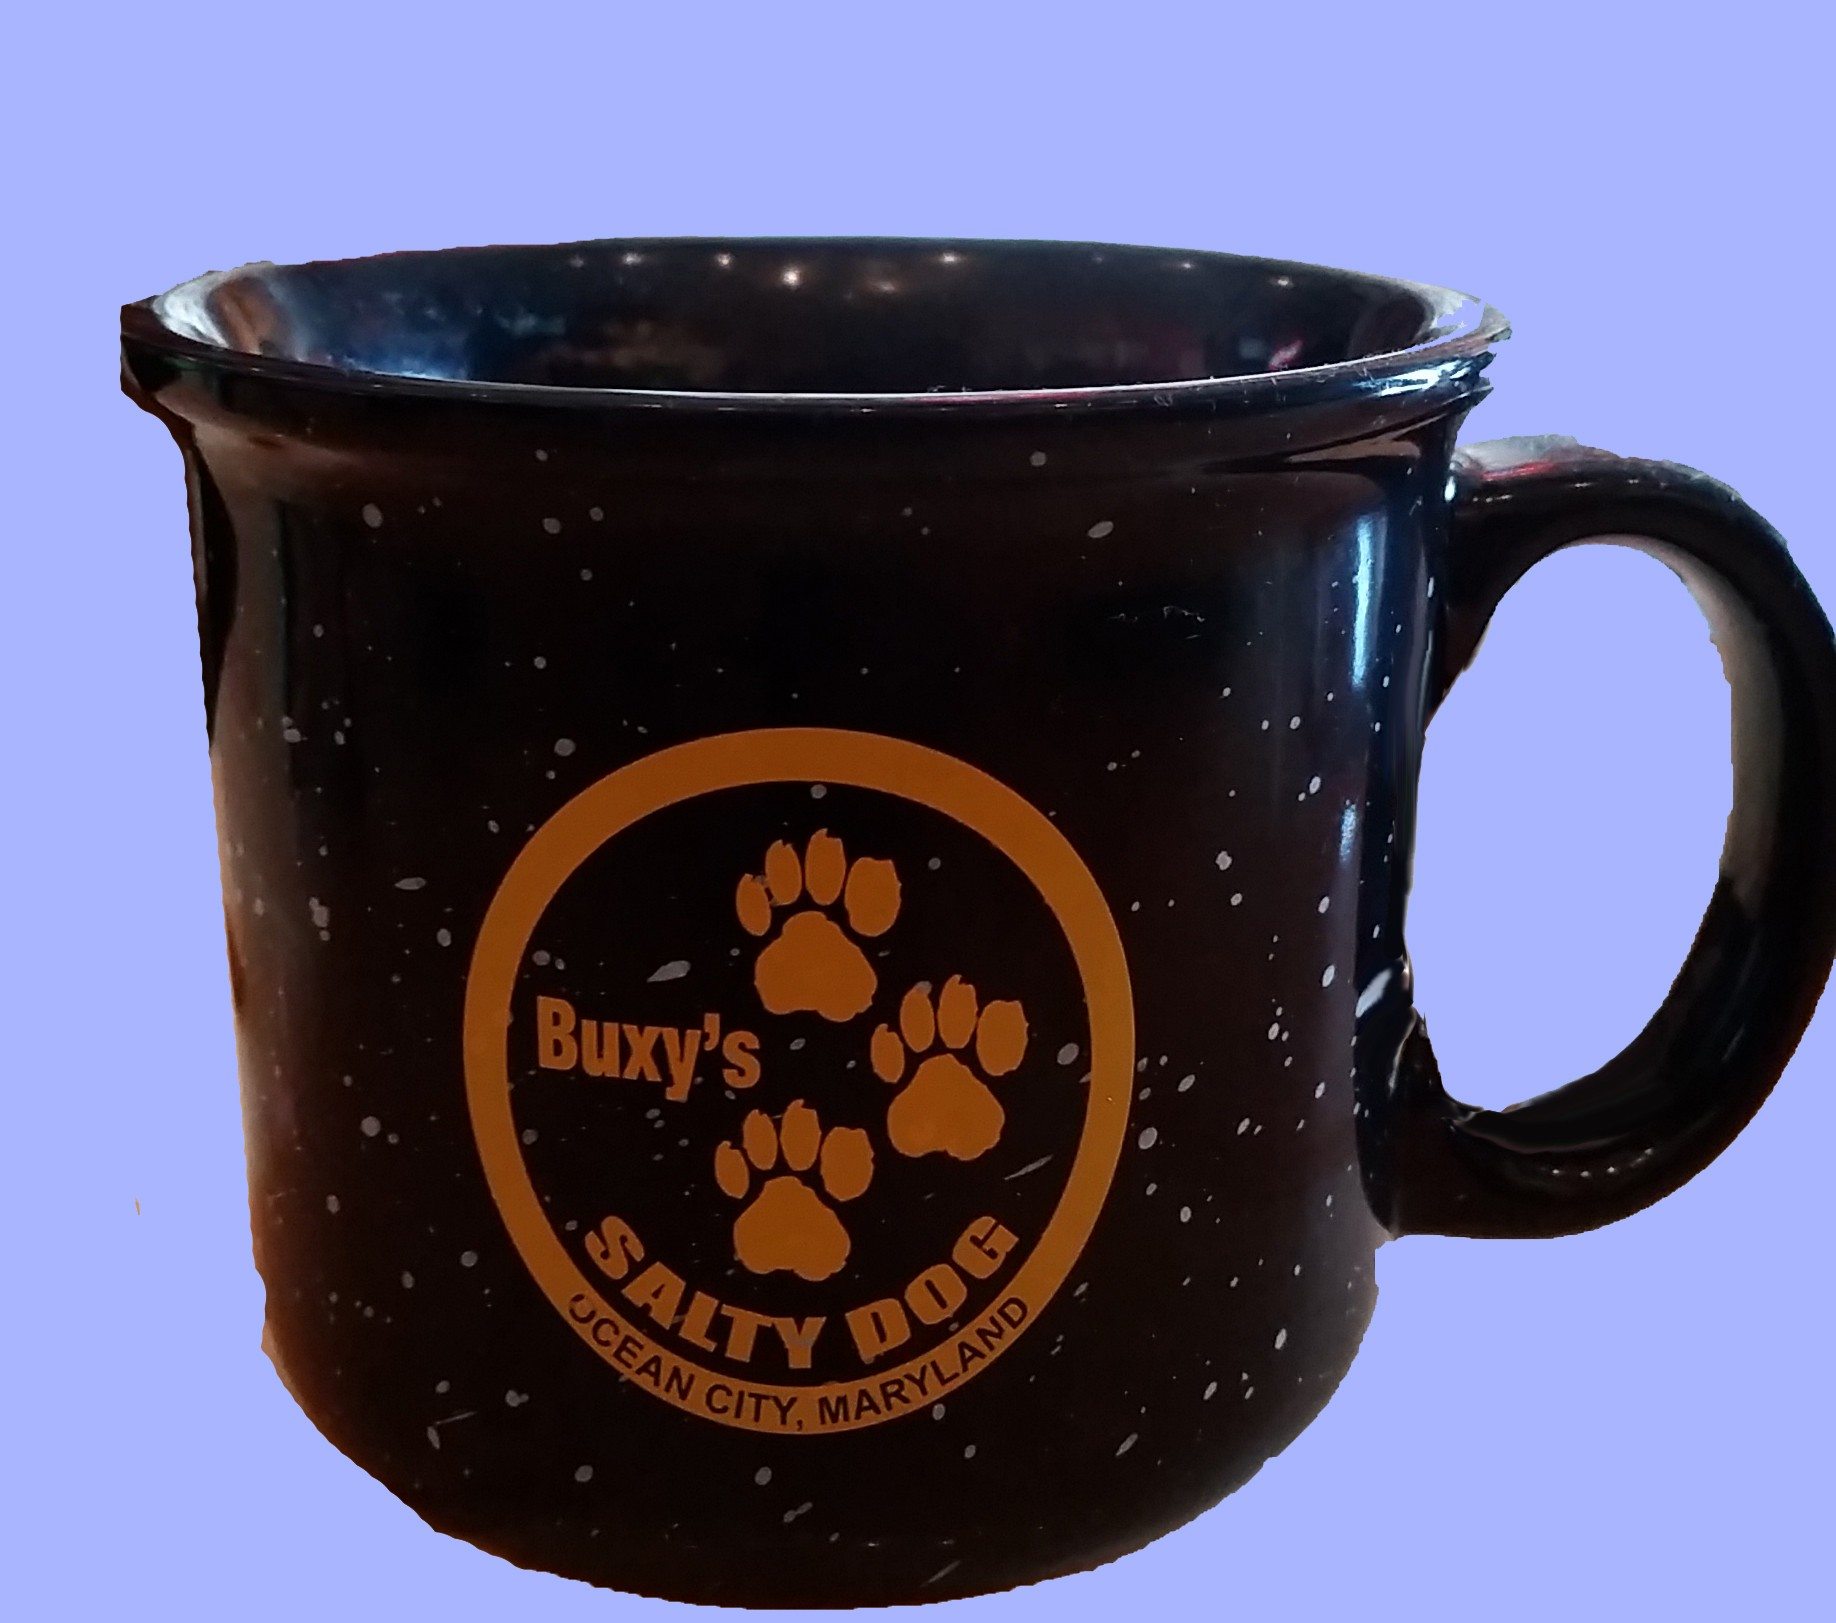 Original Coffee Mugs Buxy 39s Original Coffee Mug Merchandise